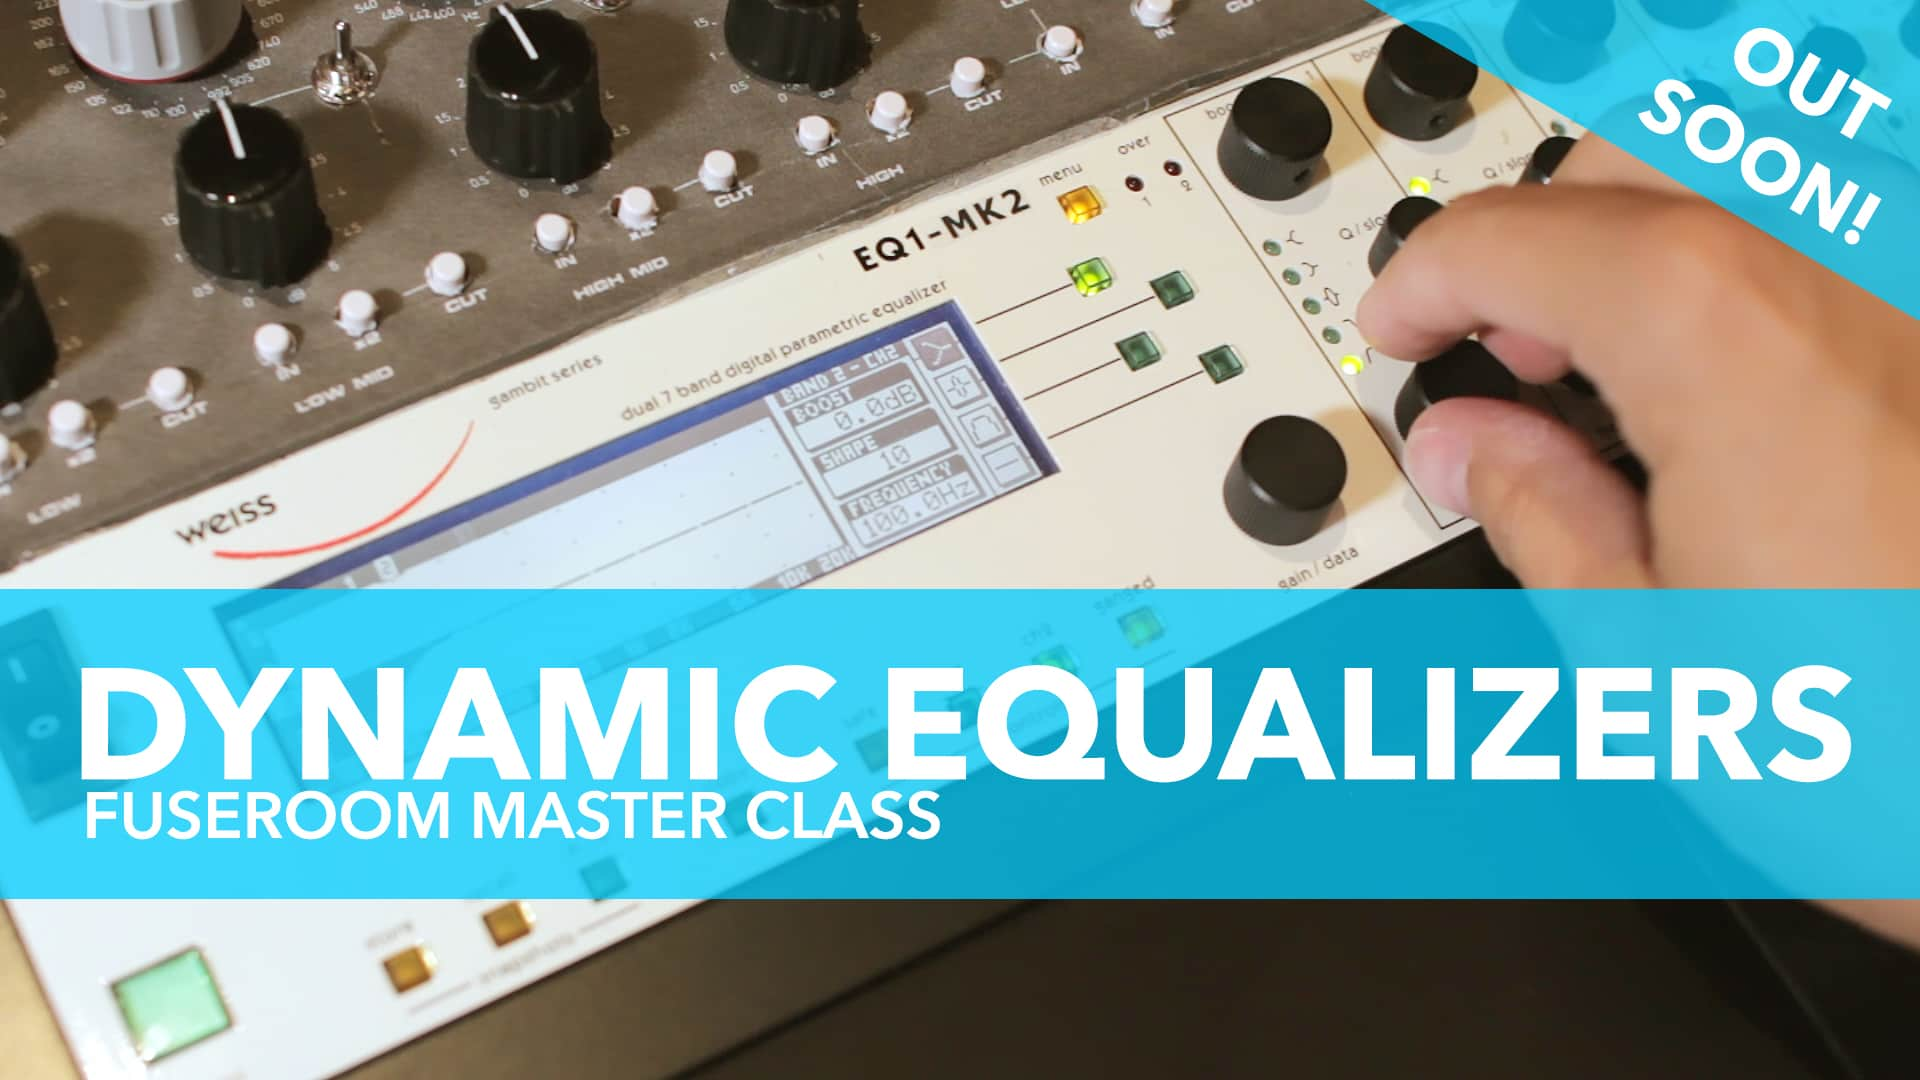 Dynamic Equalizers